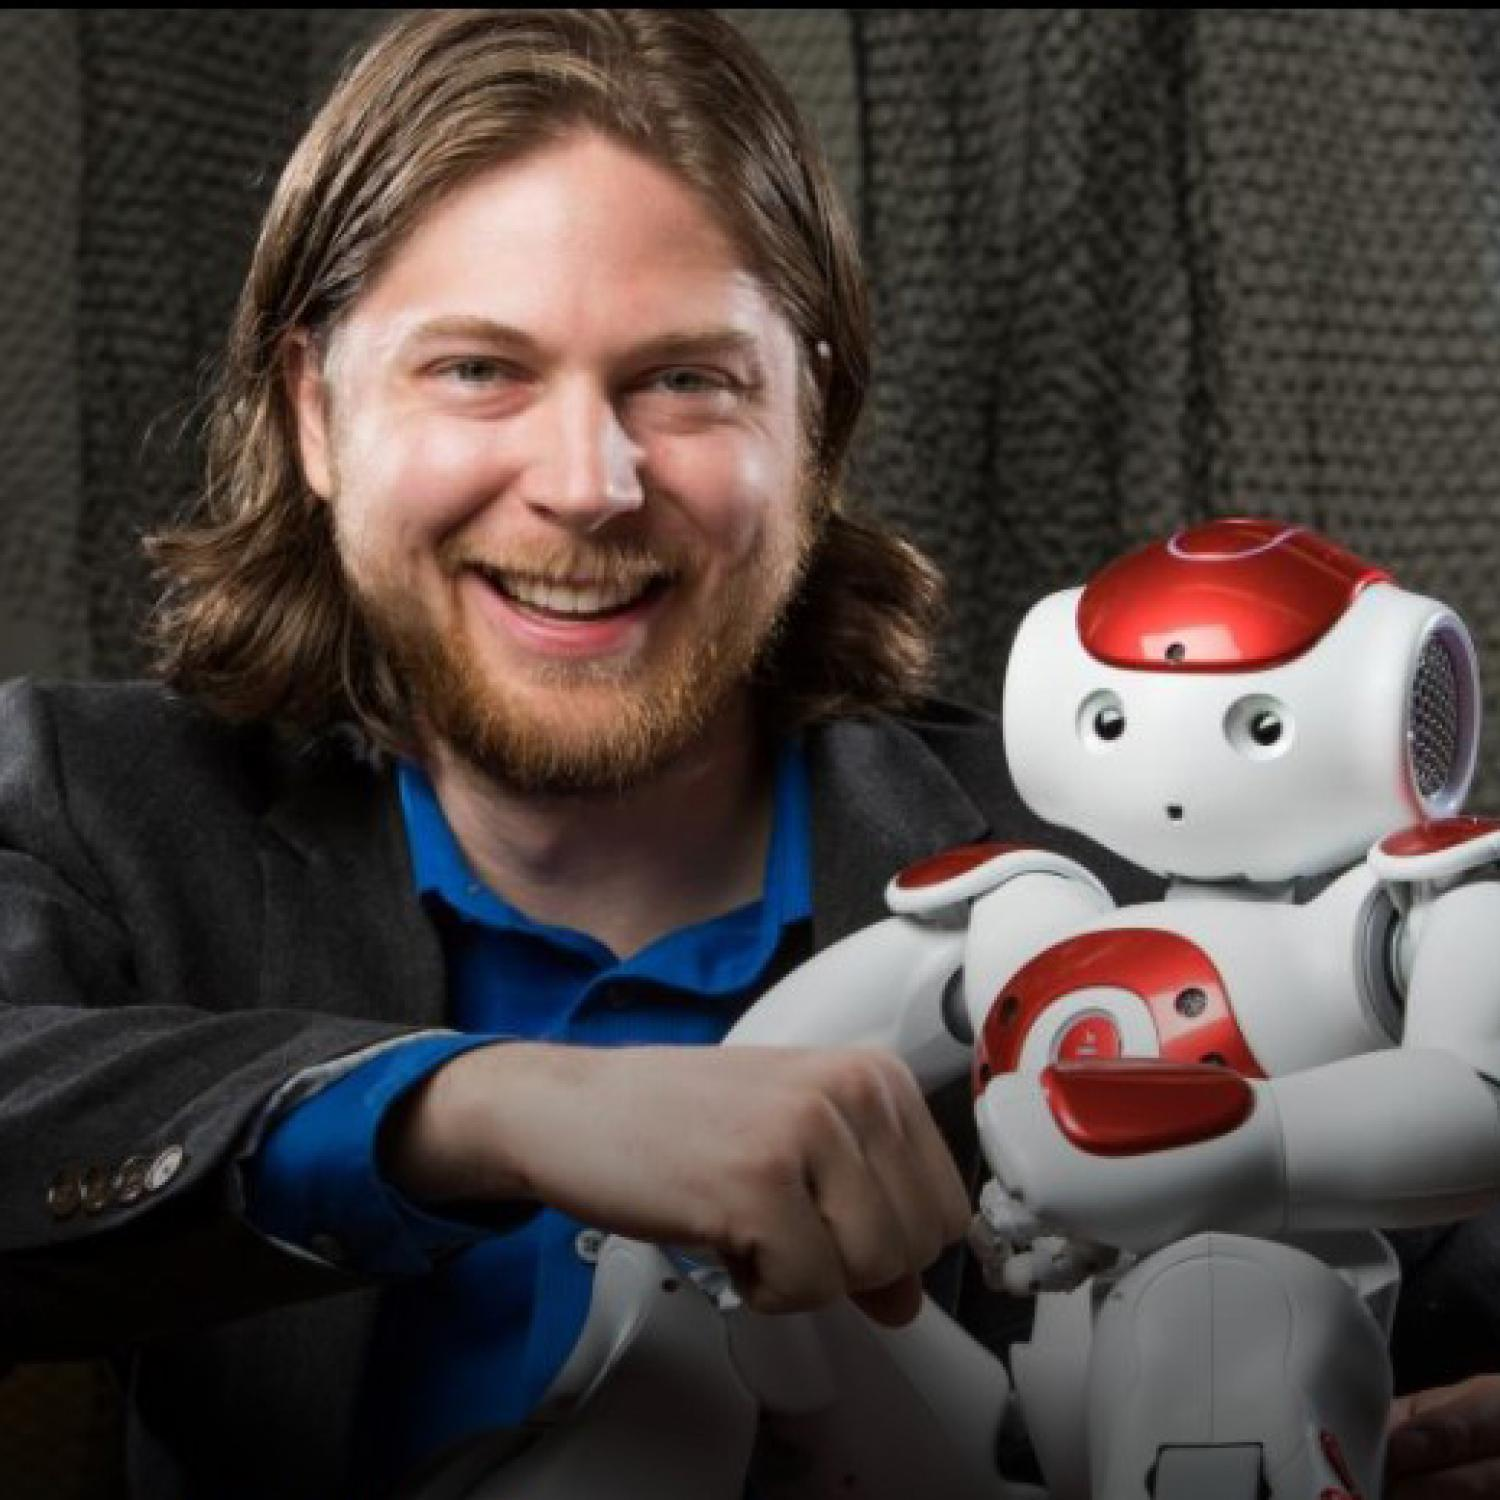 CU Boulder scientist envisions a world where robots have that human touch